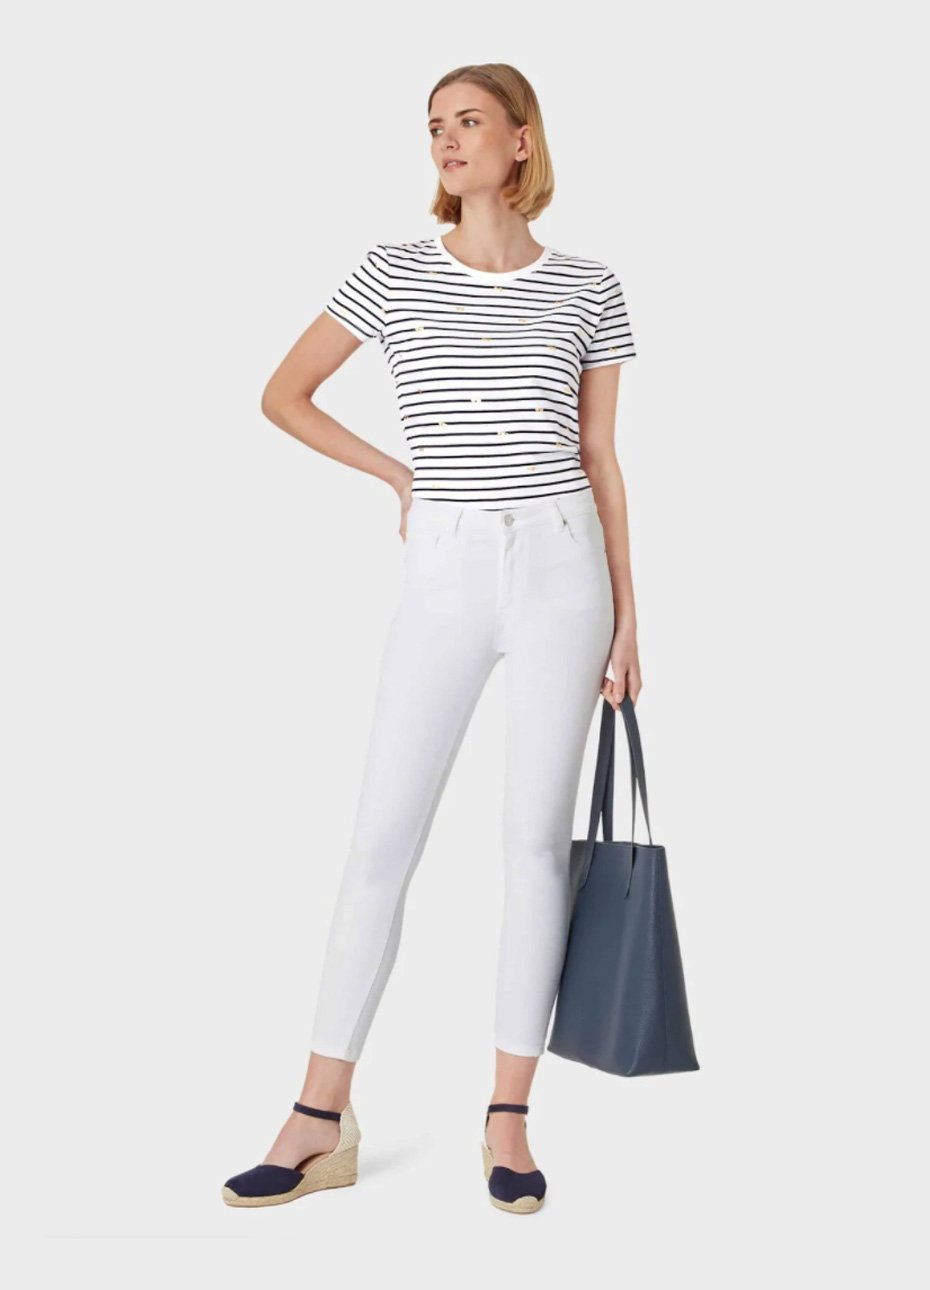 Striped t-shirt in black and white paired with white skinny slim fit jeans, espadrille wedges in black with an ankle strap detail and a black leather tote bag, ideal as a smart casual outfit. Hobbs.